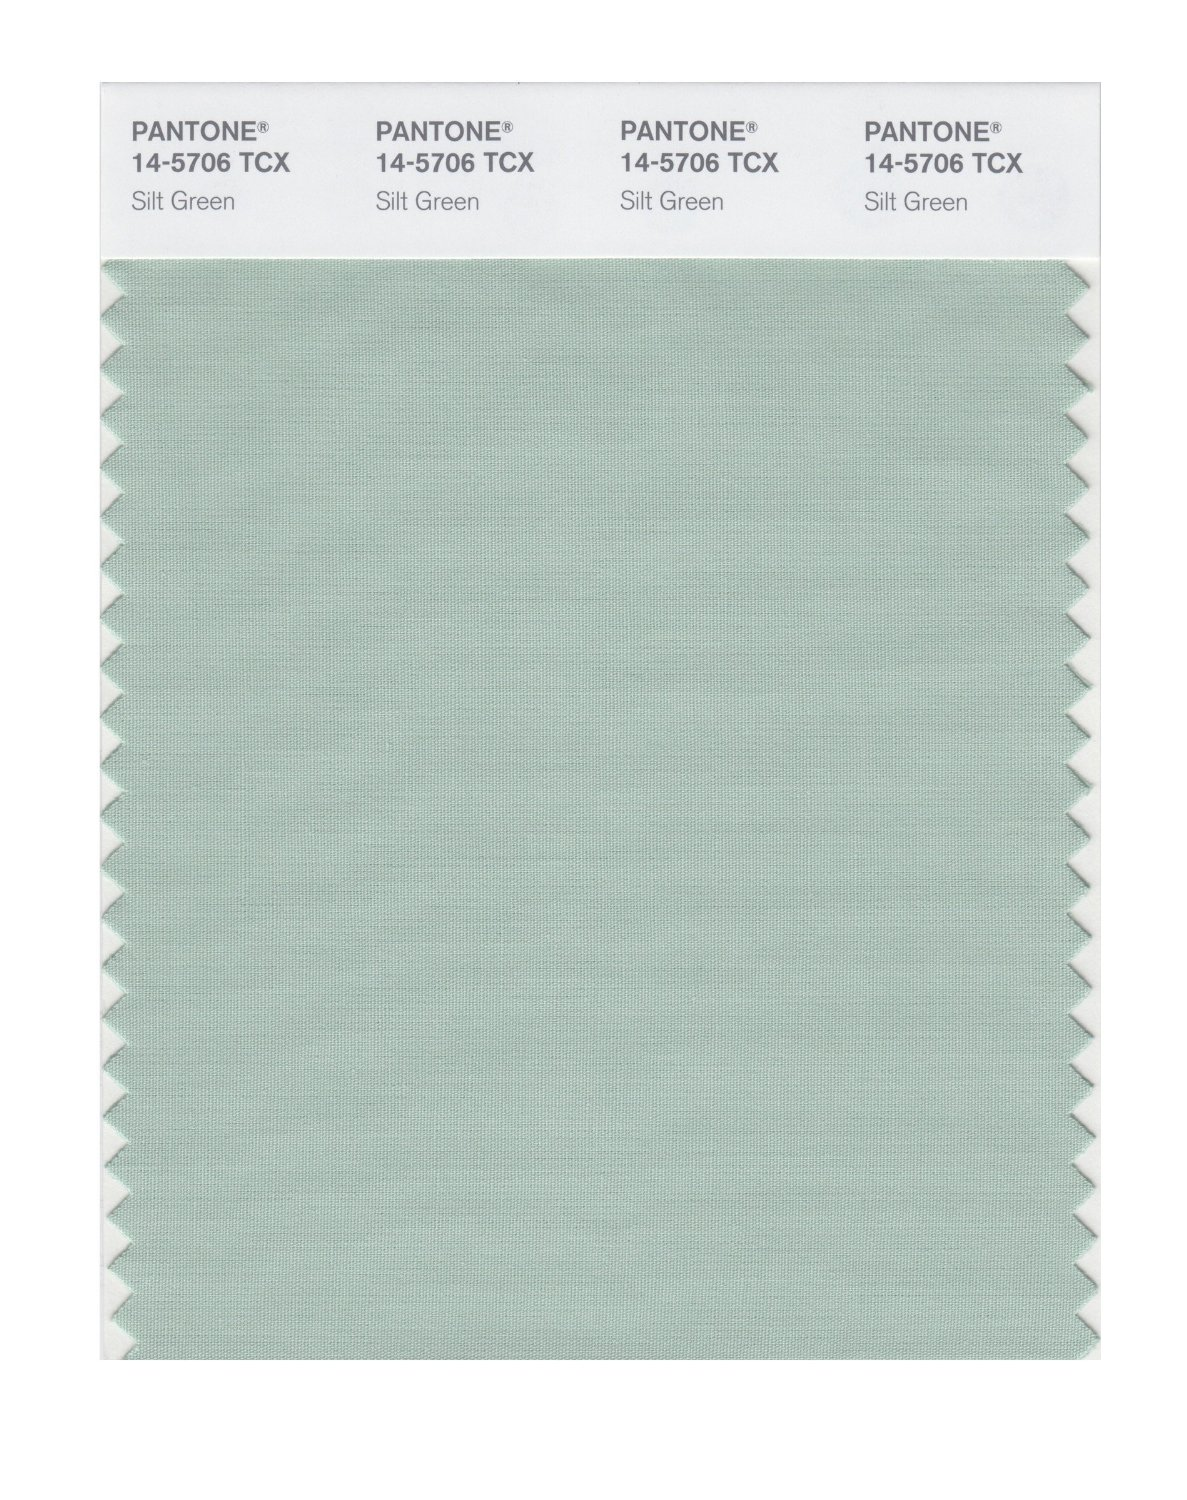 Pantone Smart Swatch 14-5706 Silt Green